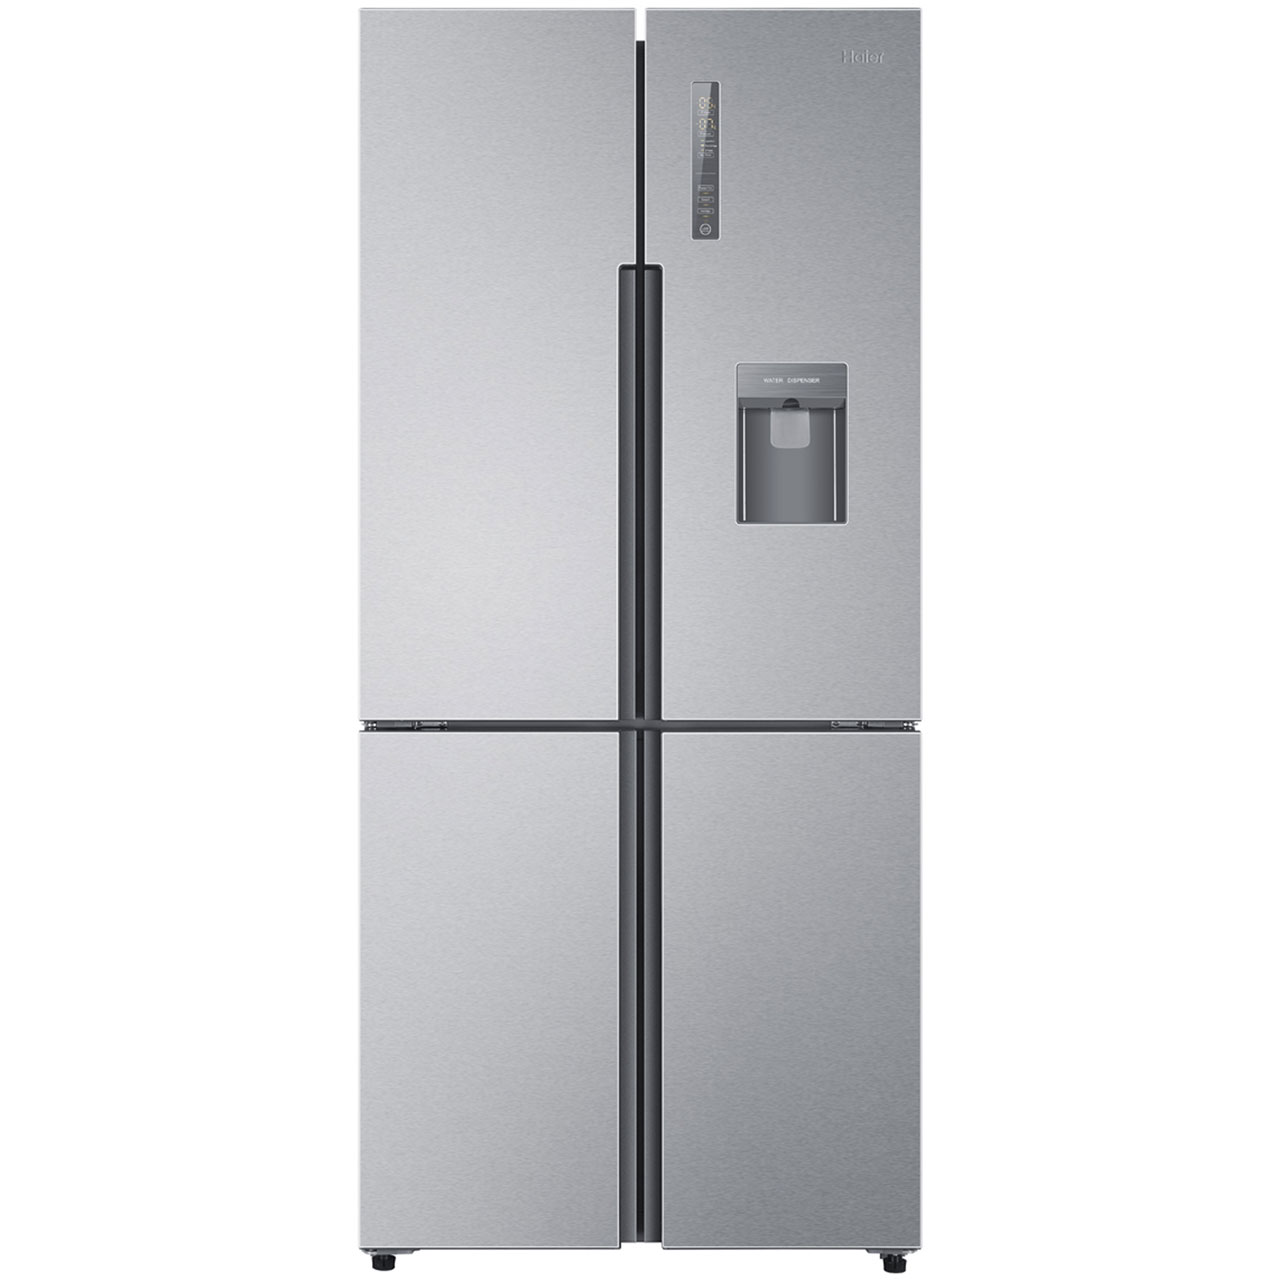 haier htf 452wm7 american fridge freezer appliance spotter. Black Bedroom Furniture Sets. Home Design Ideas